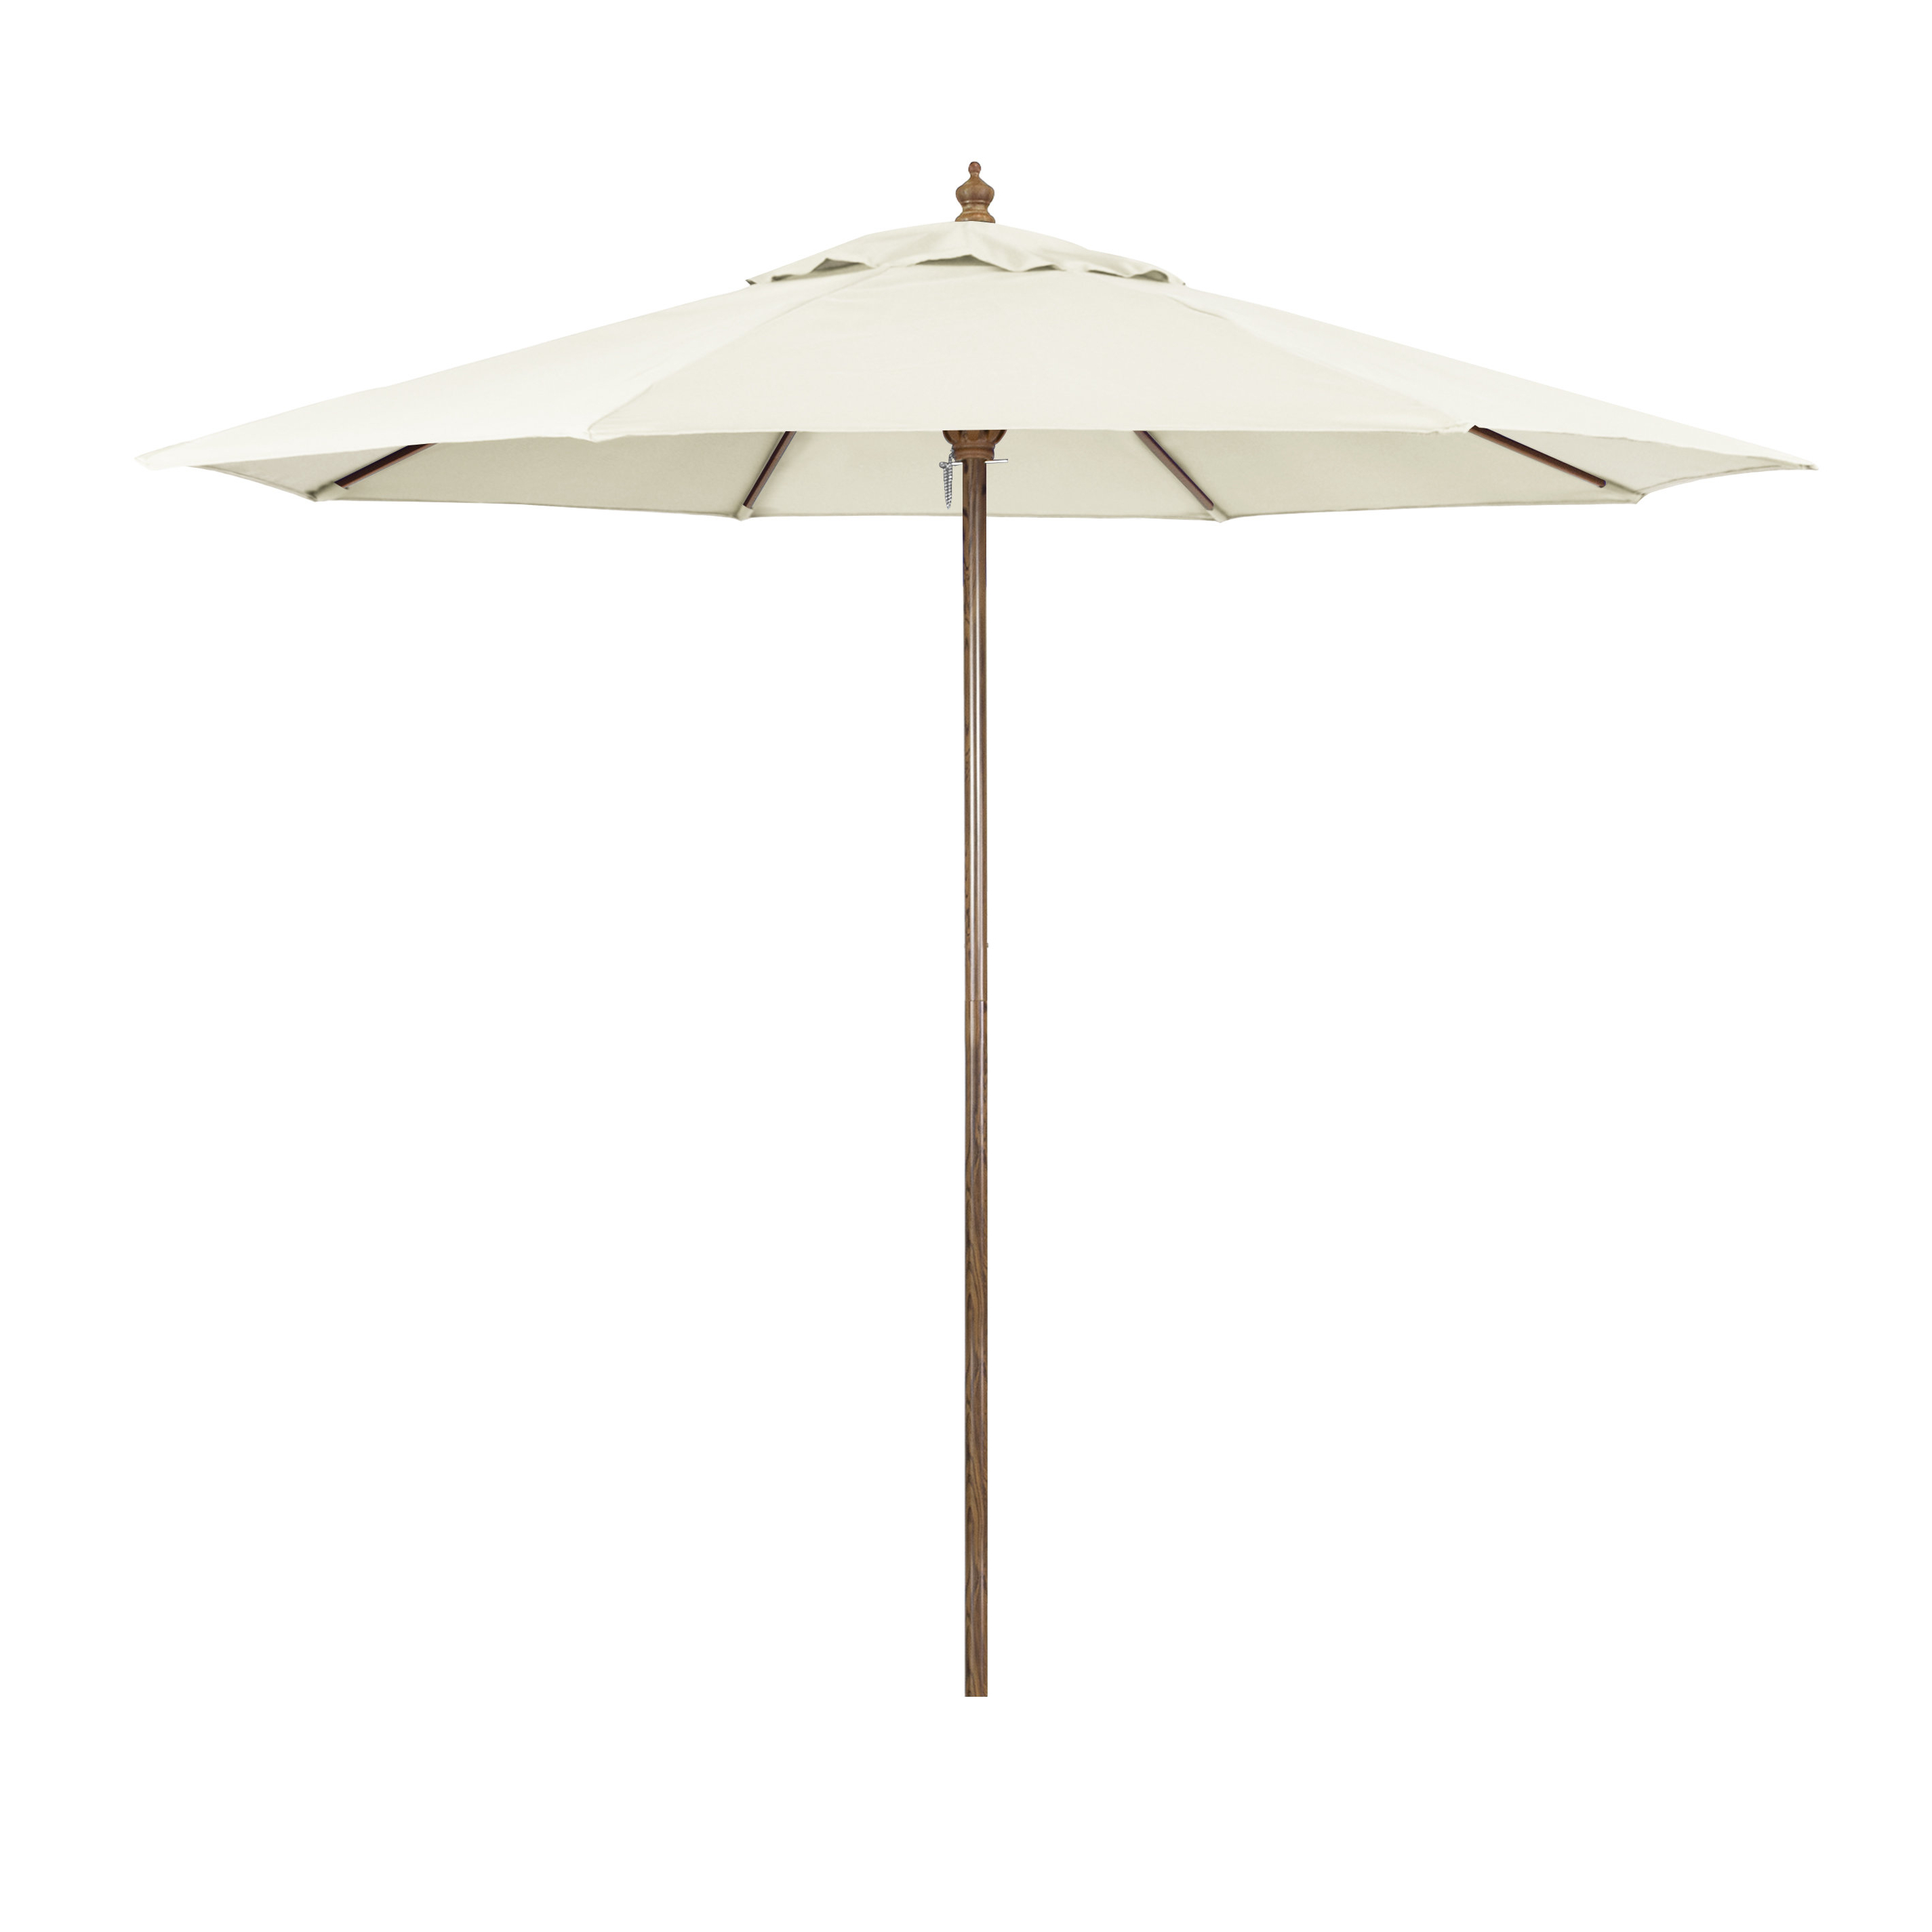 Ryant 9' Market Umbrella Throughout Well Known Ryant Cantilever Umbrellas (Gallery 15 of 20)